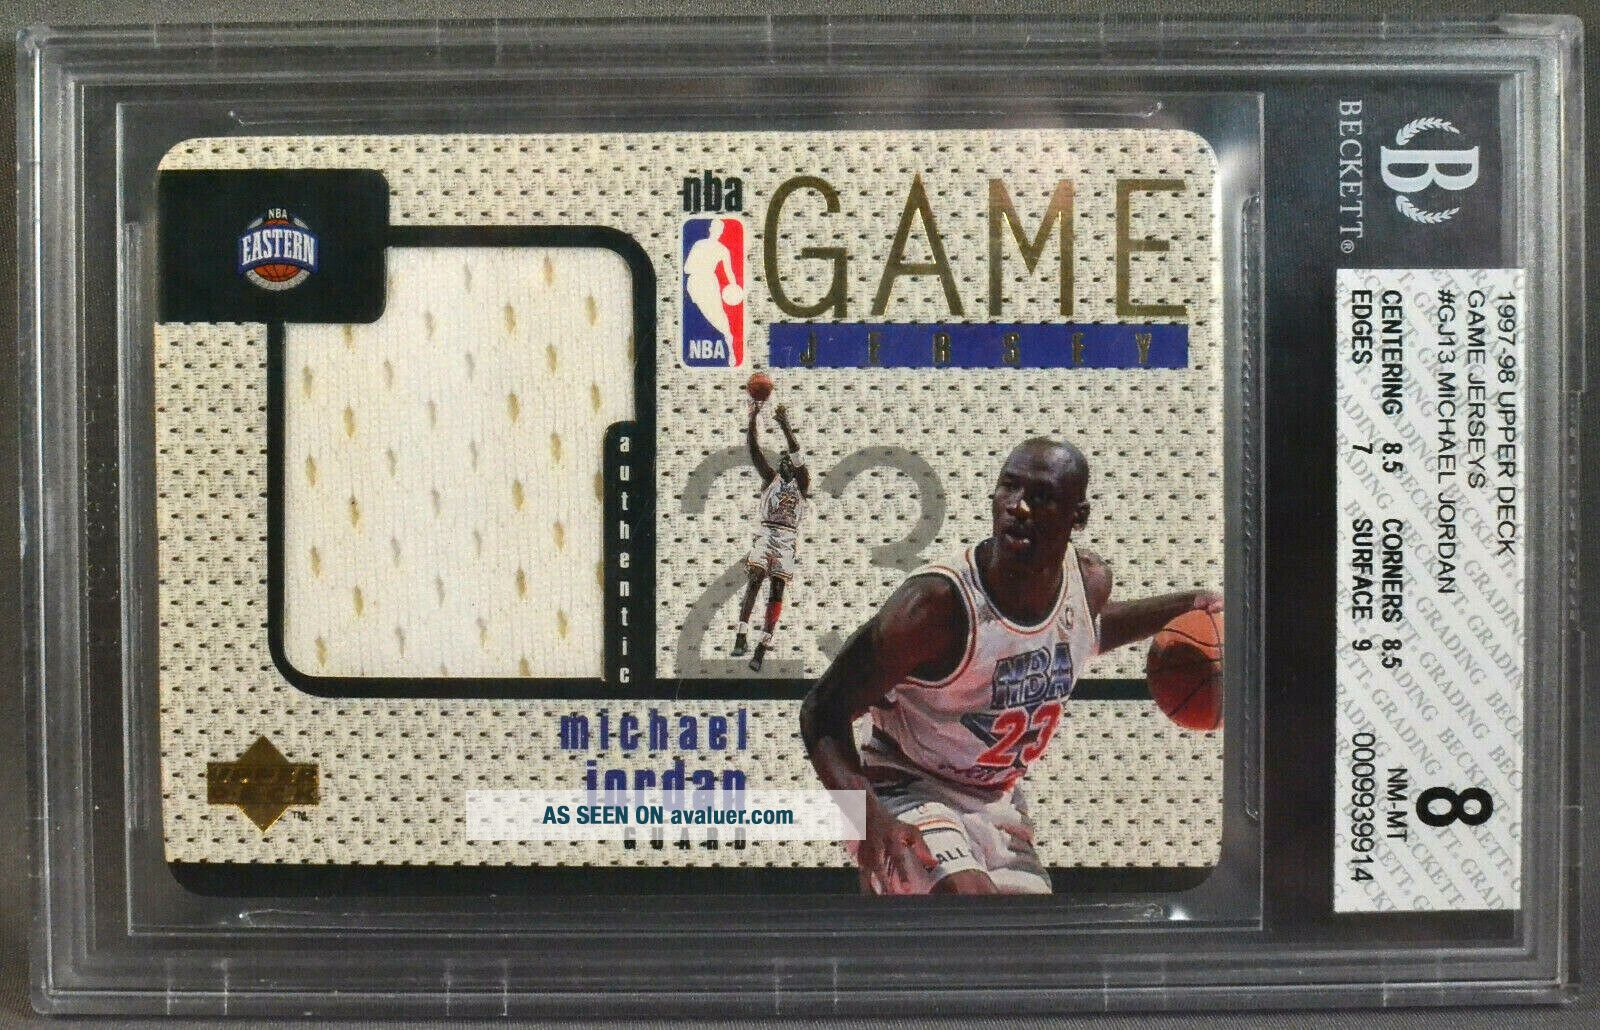 97 - 98 UD Upper Deck Michael Jordan NBA ALL - STAR GAME JERSEY 1997 1998 BGS 8 NM/M